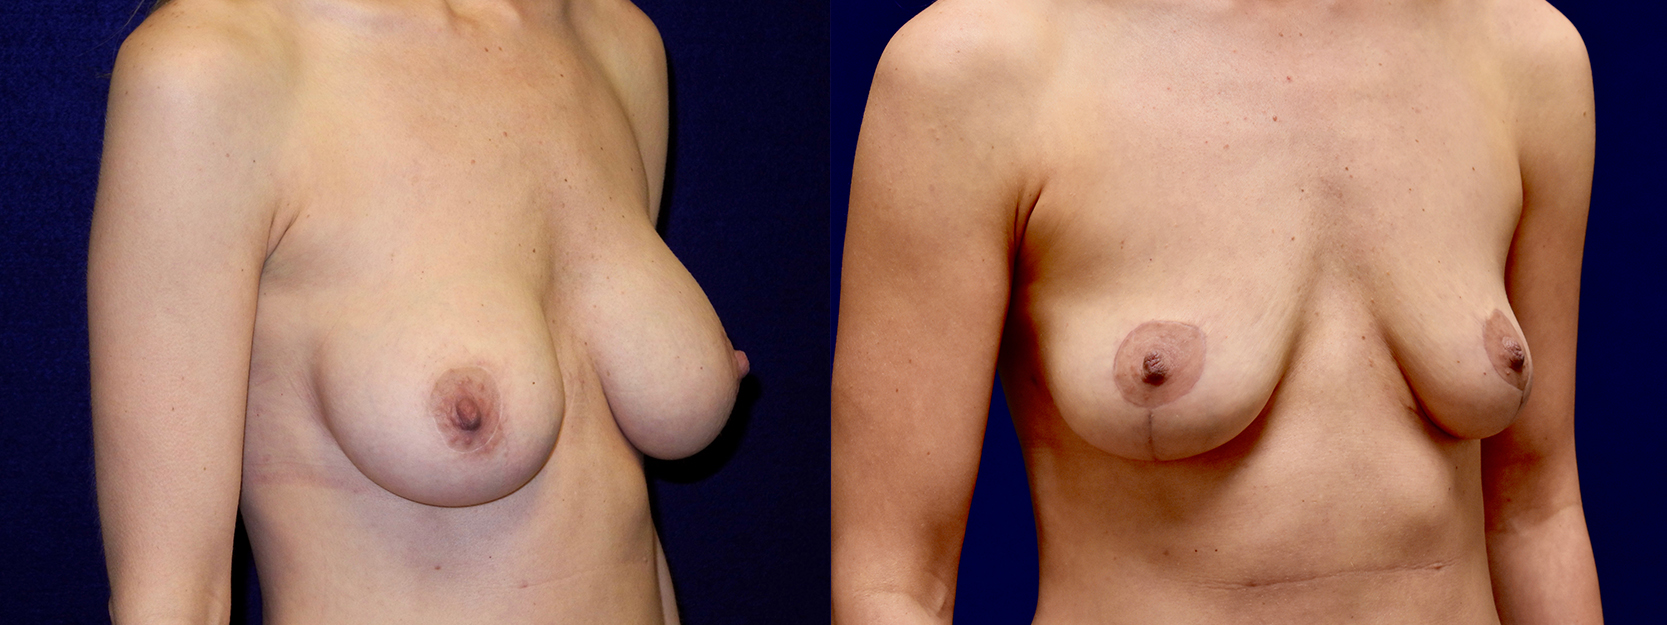 Right 3/4 View - Breast Implant Removal with Breast Lift